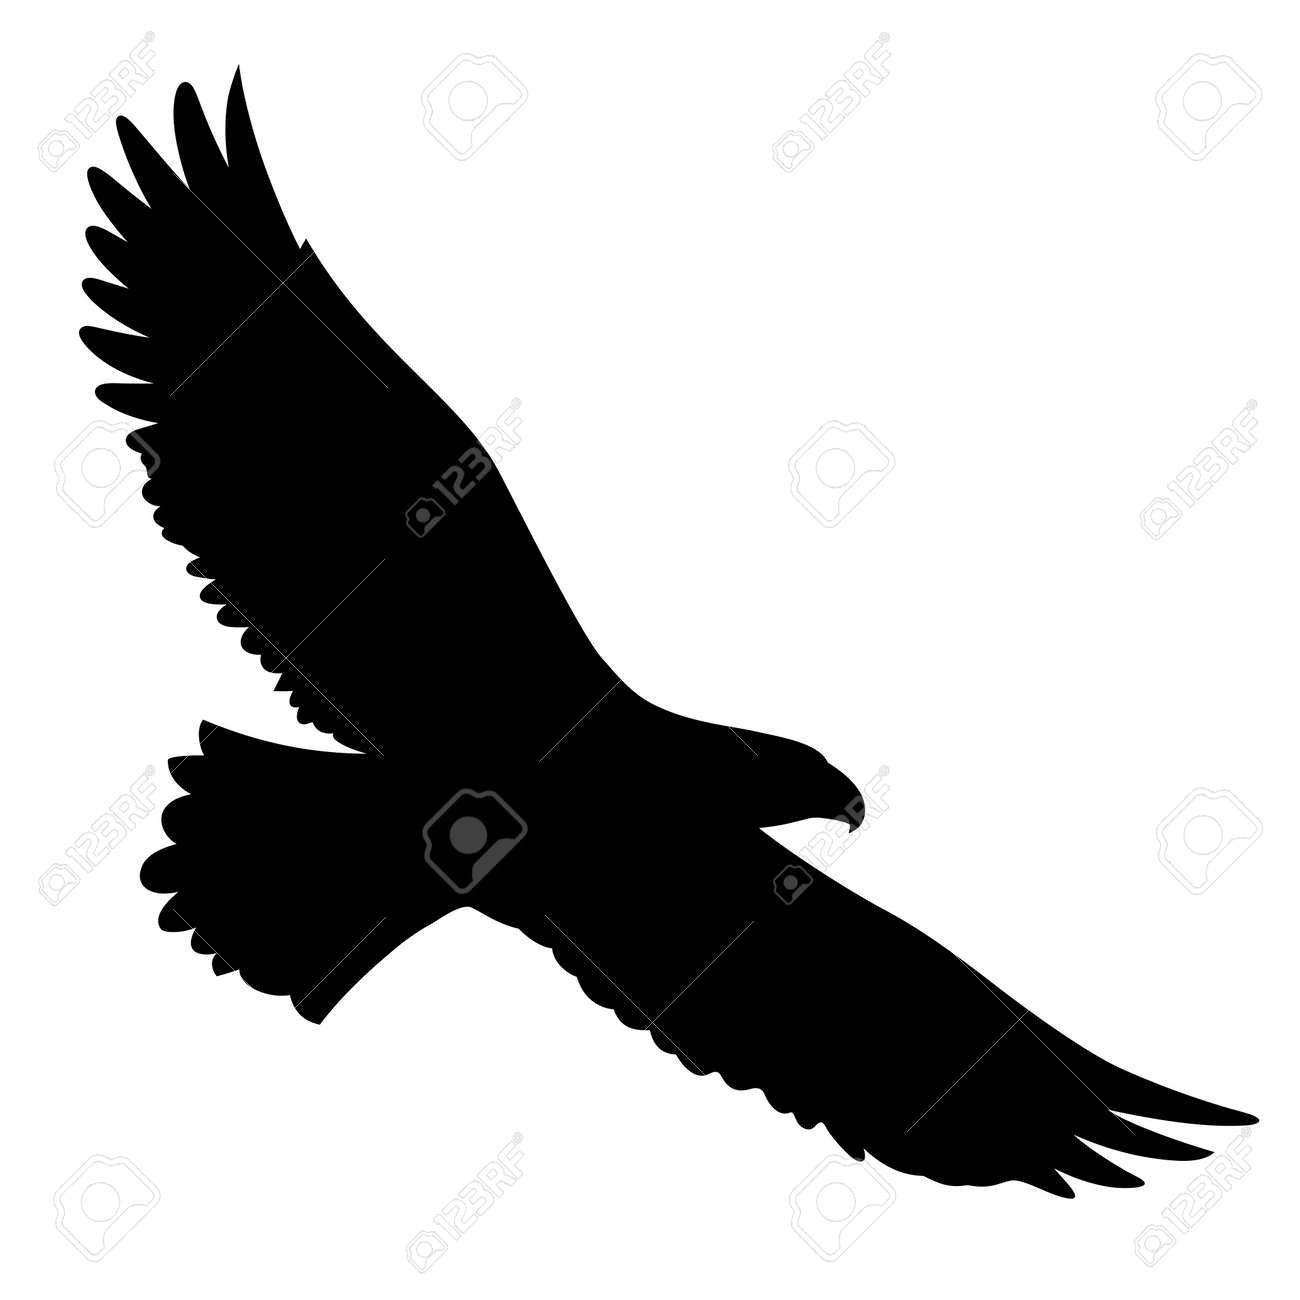 Bald Eagle silhouette isolated on white. This vector illustration can be used as a print on t-shirts, tattoo element or other uses - 110427387